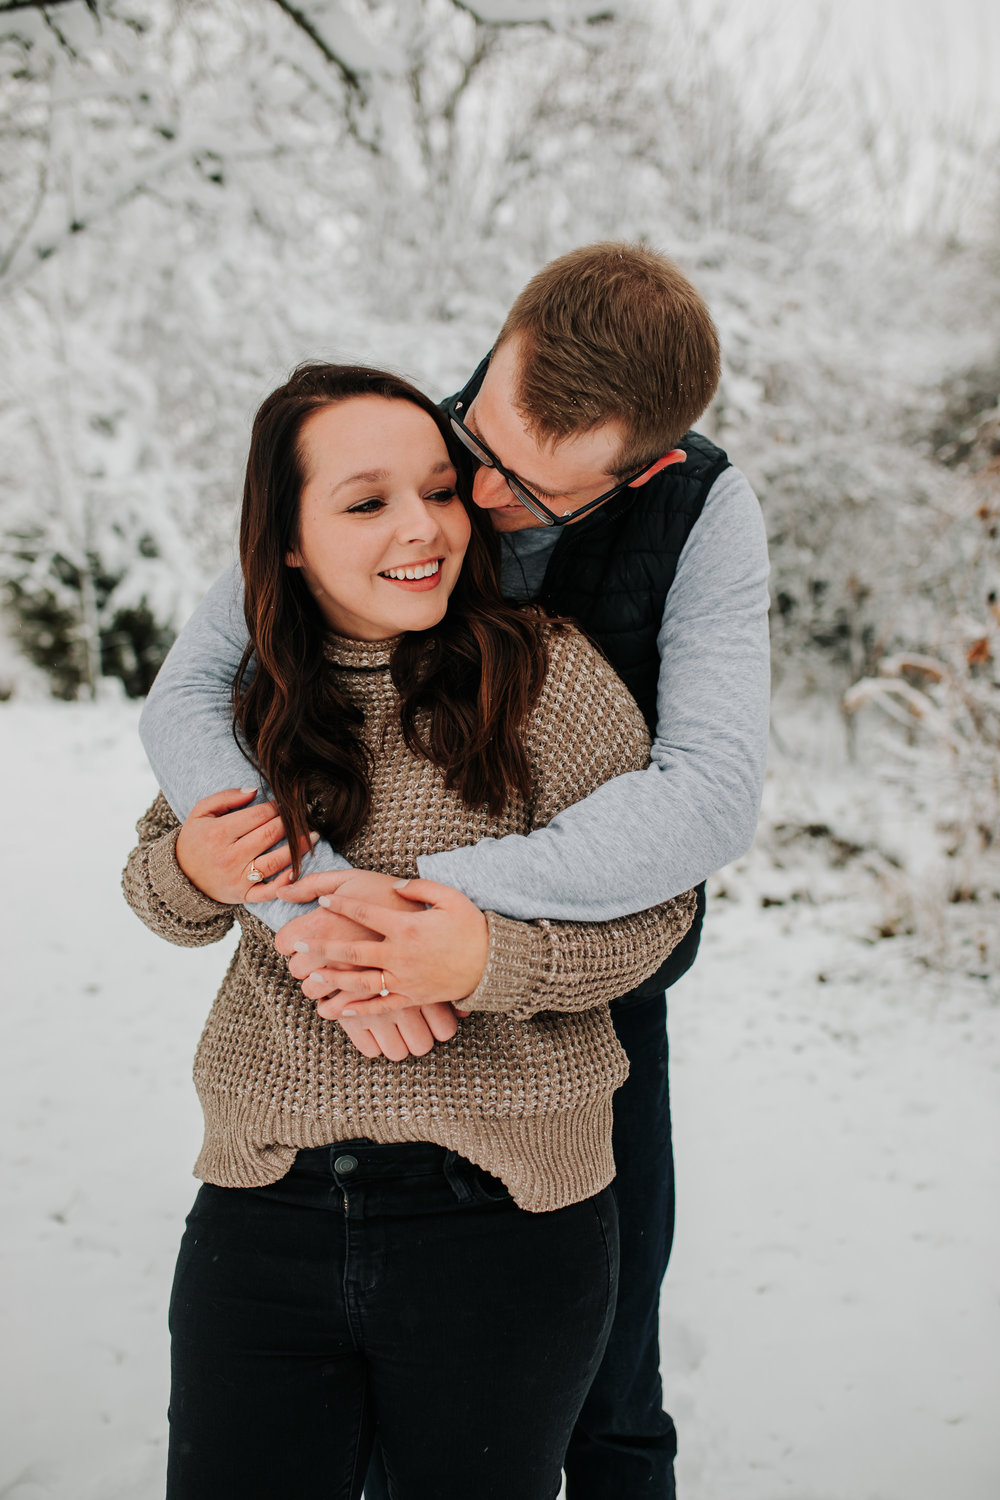 Vanessa & Dan - Engaged - Nathaniel Jensen Photography - Omaha Nebraska Wedding Photographer - Standing Bear Lake - Snowy Engagement Session-19.jpg